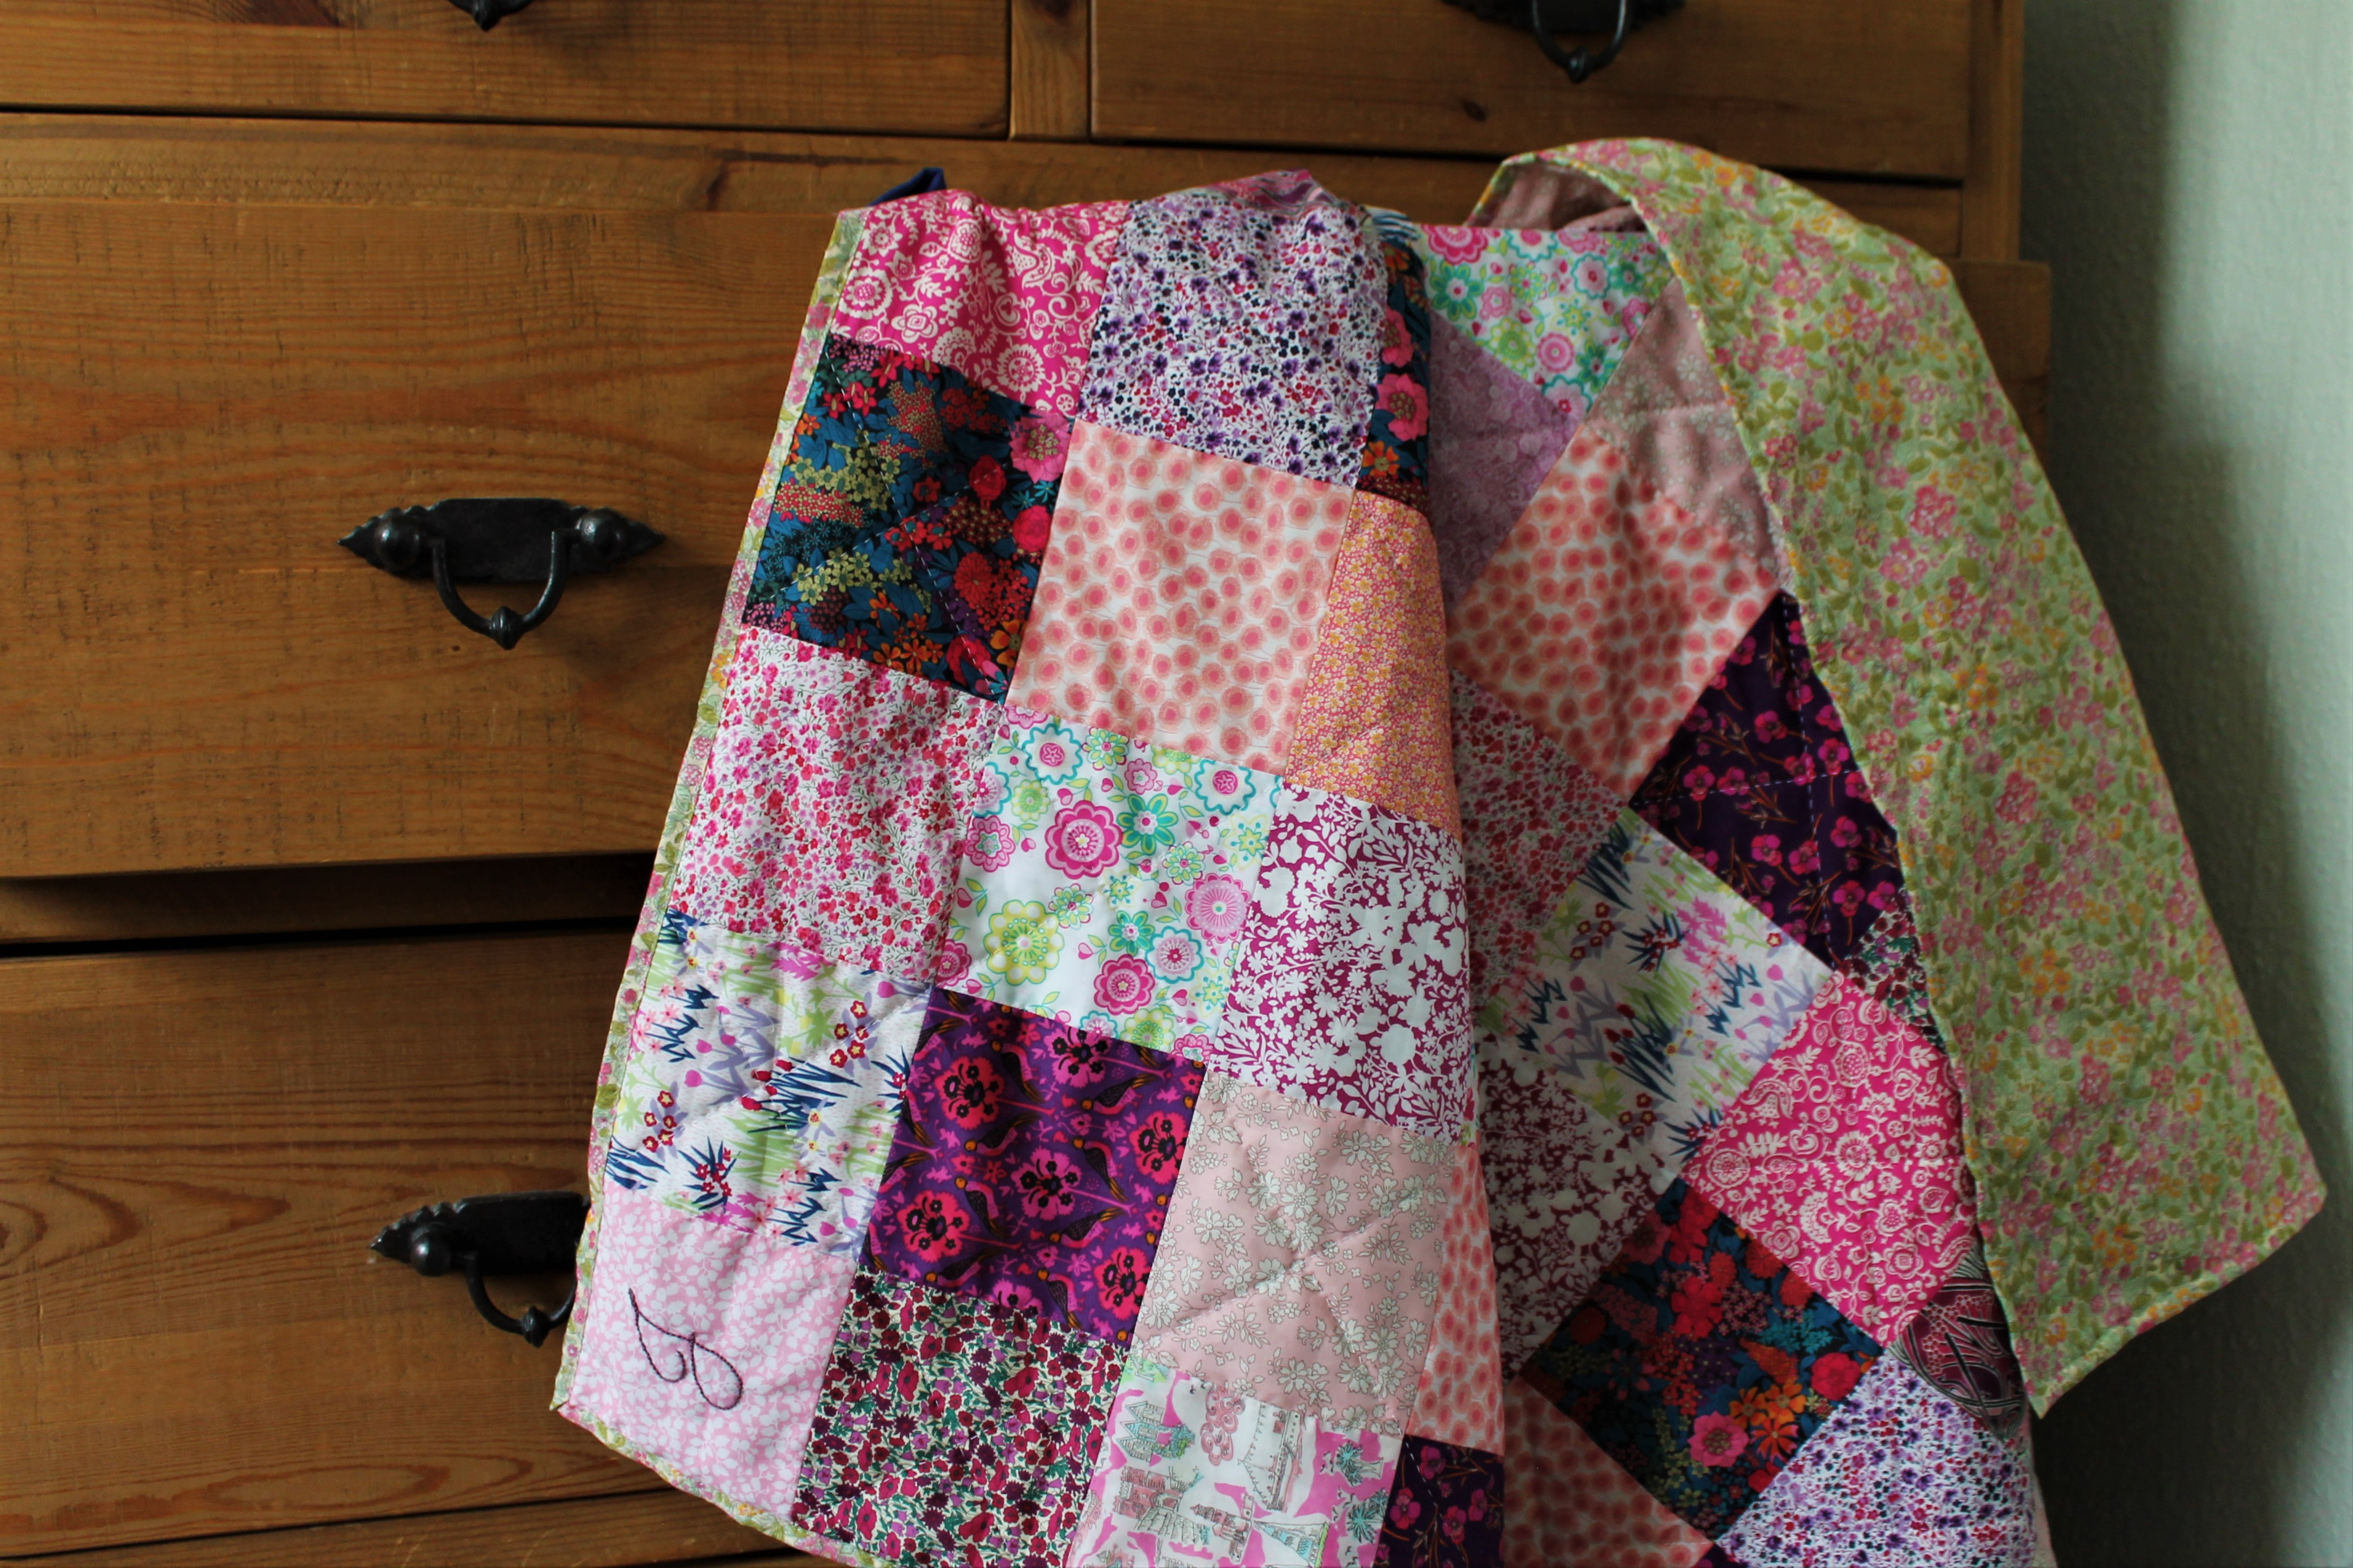 Jean's Birthday Quilt – A Beginners Guide to Quilting Part 1